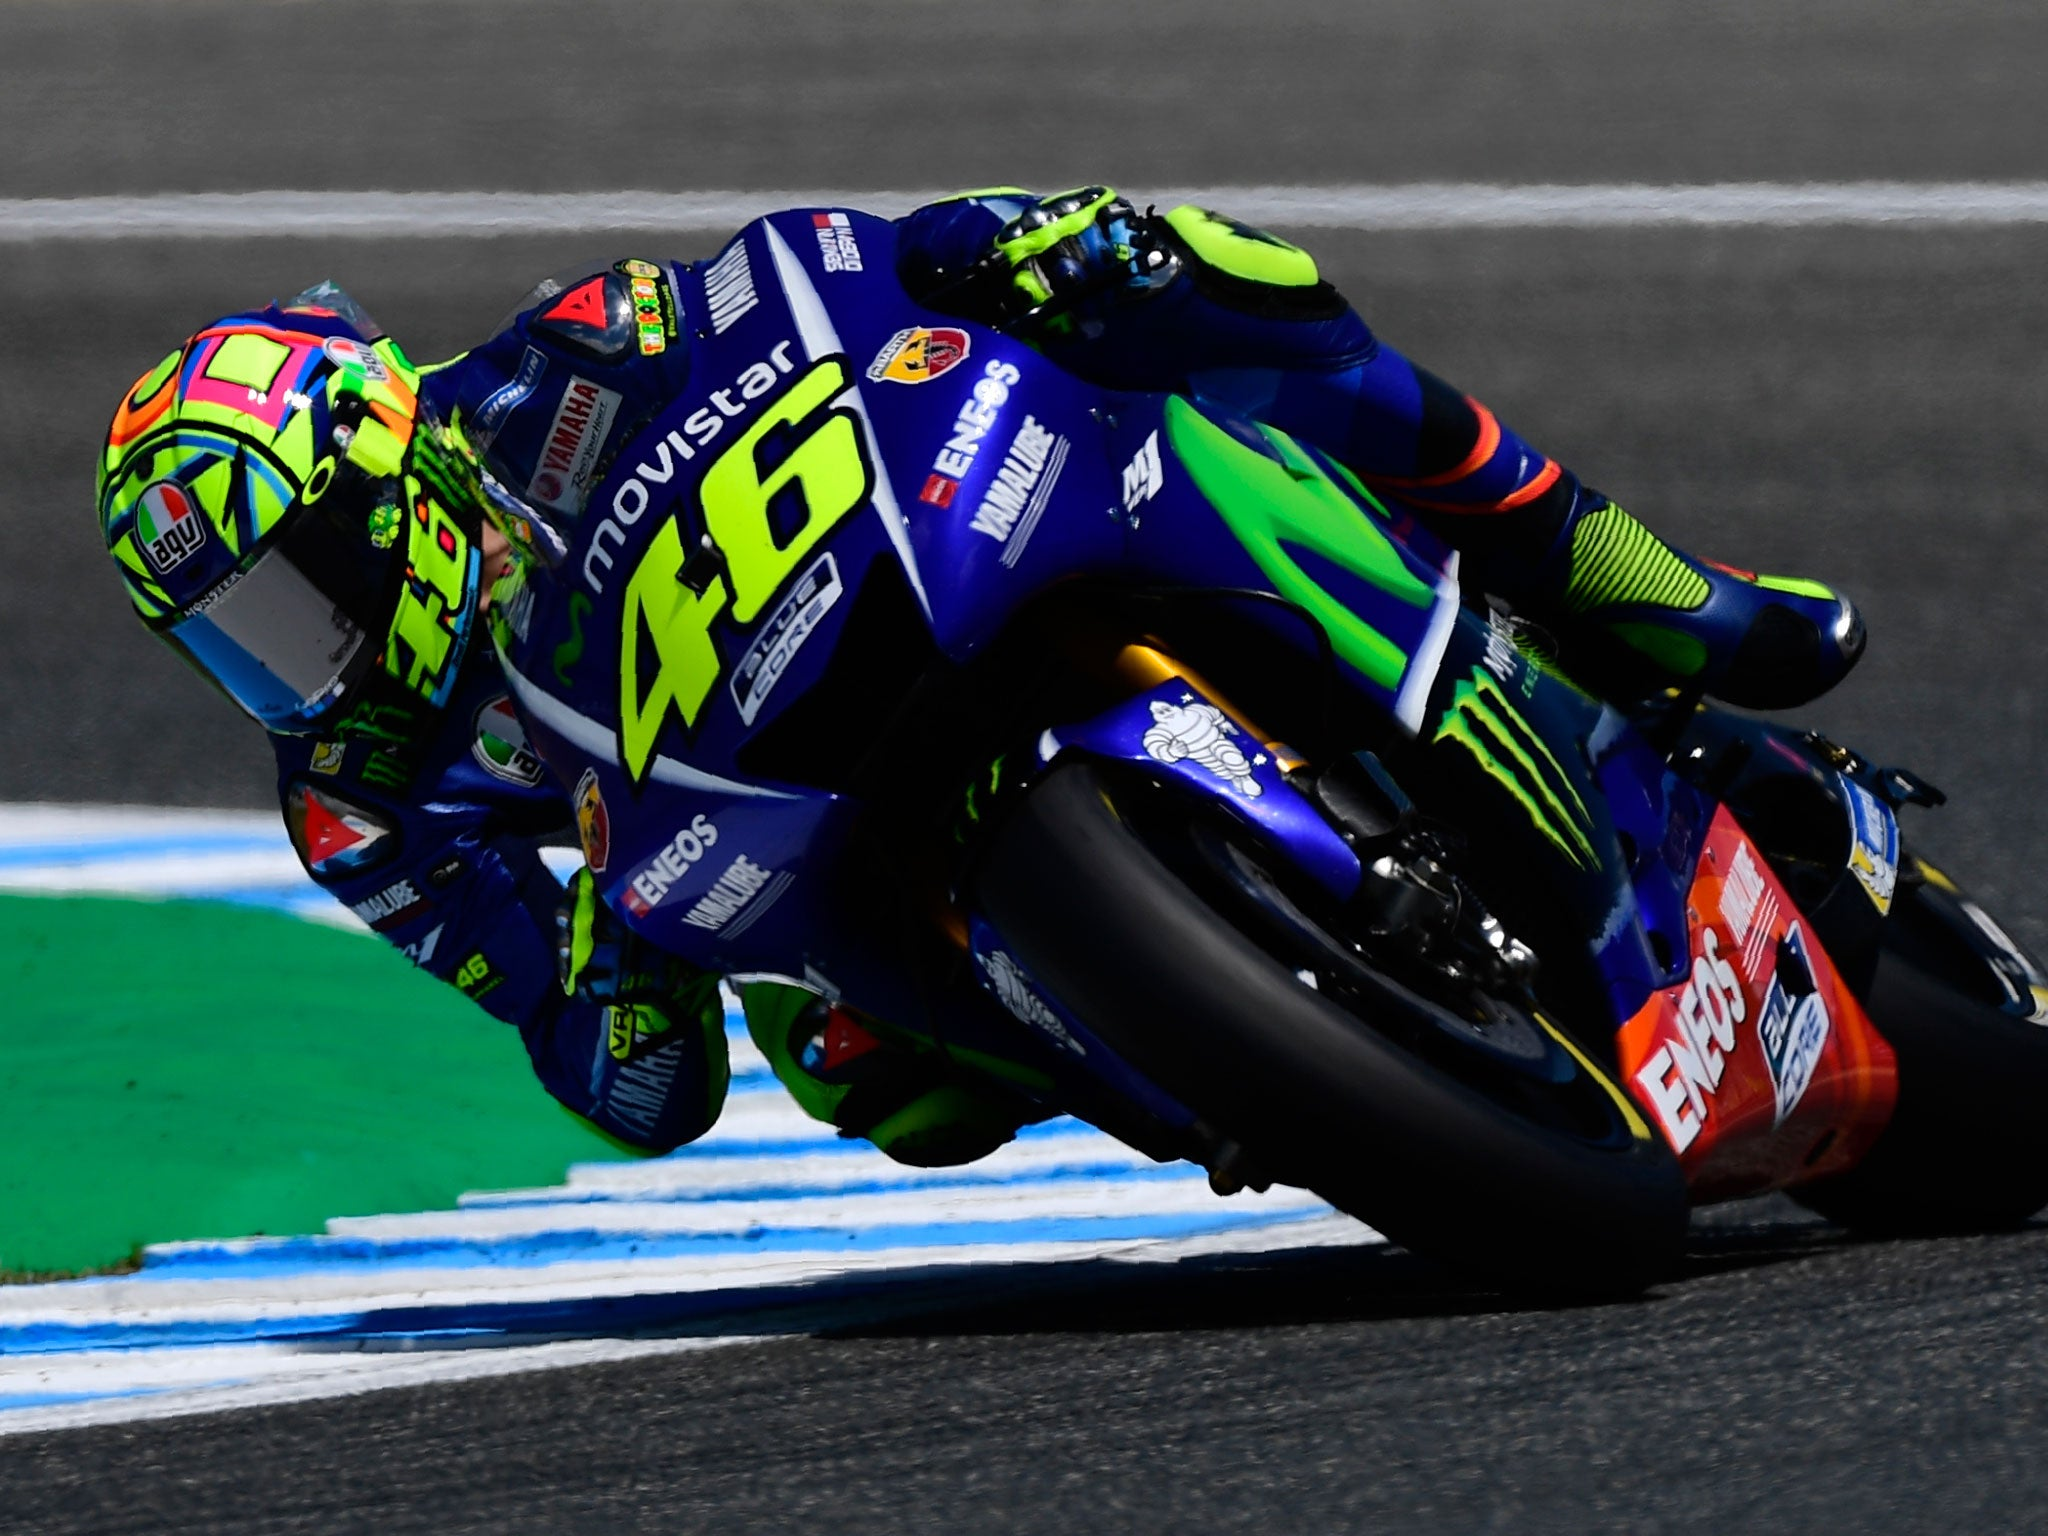 MotoGP: Valentino Rossi 'lucky' to see chequered flag in ...